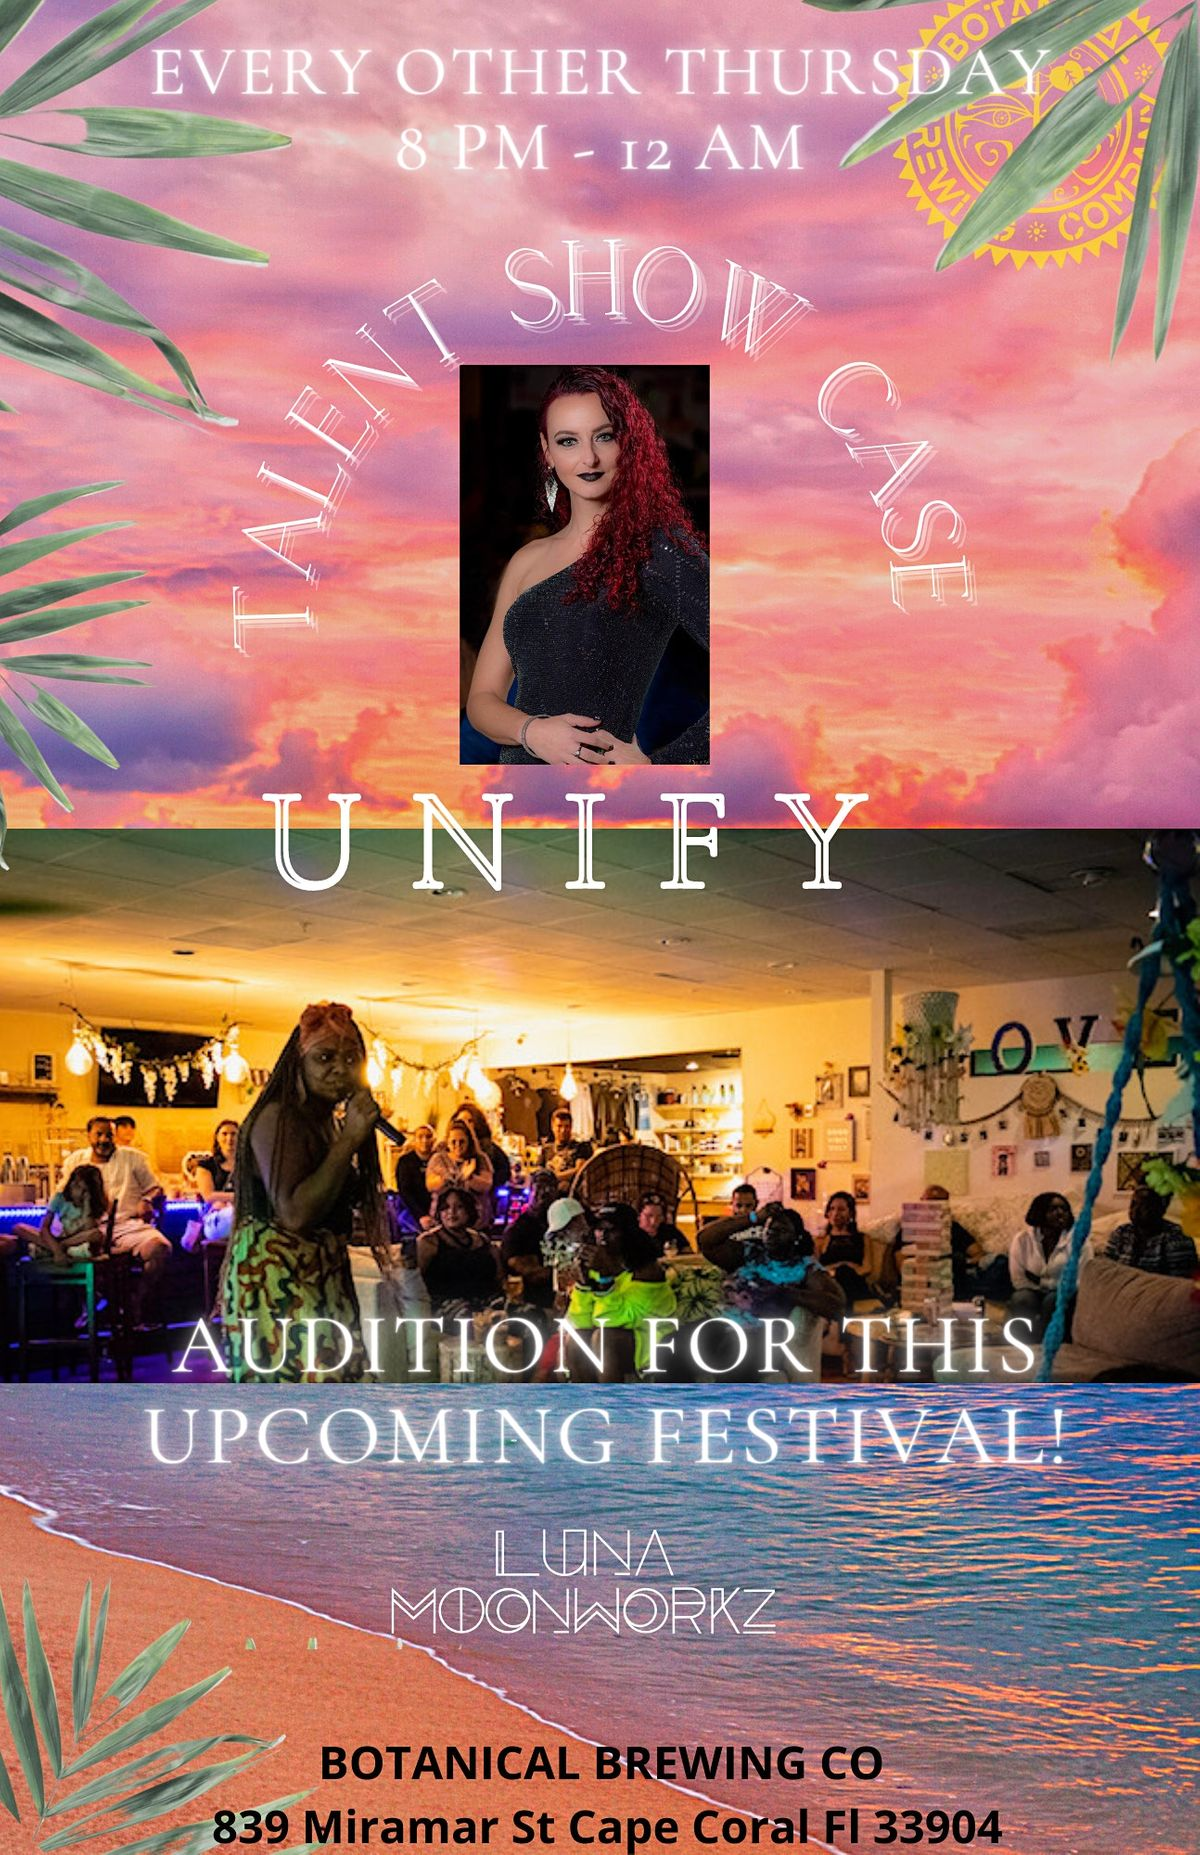 UNIFY TALENT SHOWCASE  at Botanical Brewing Company | Event in Cape Coral | AllEvents.in